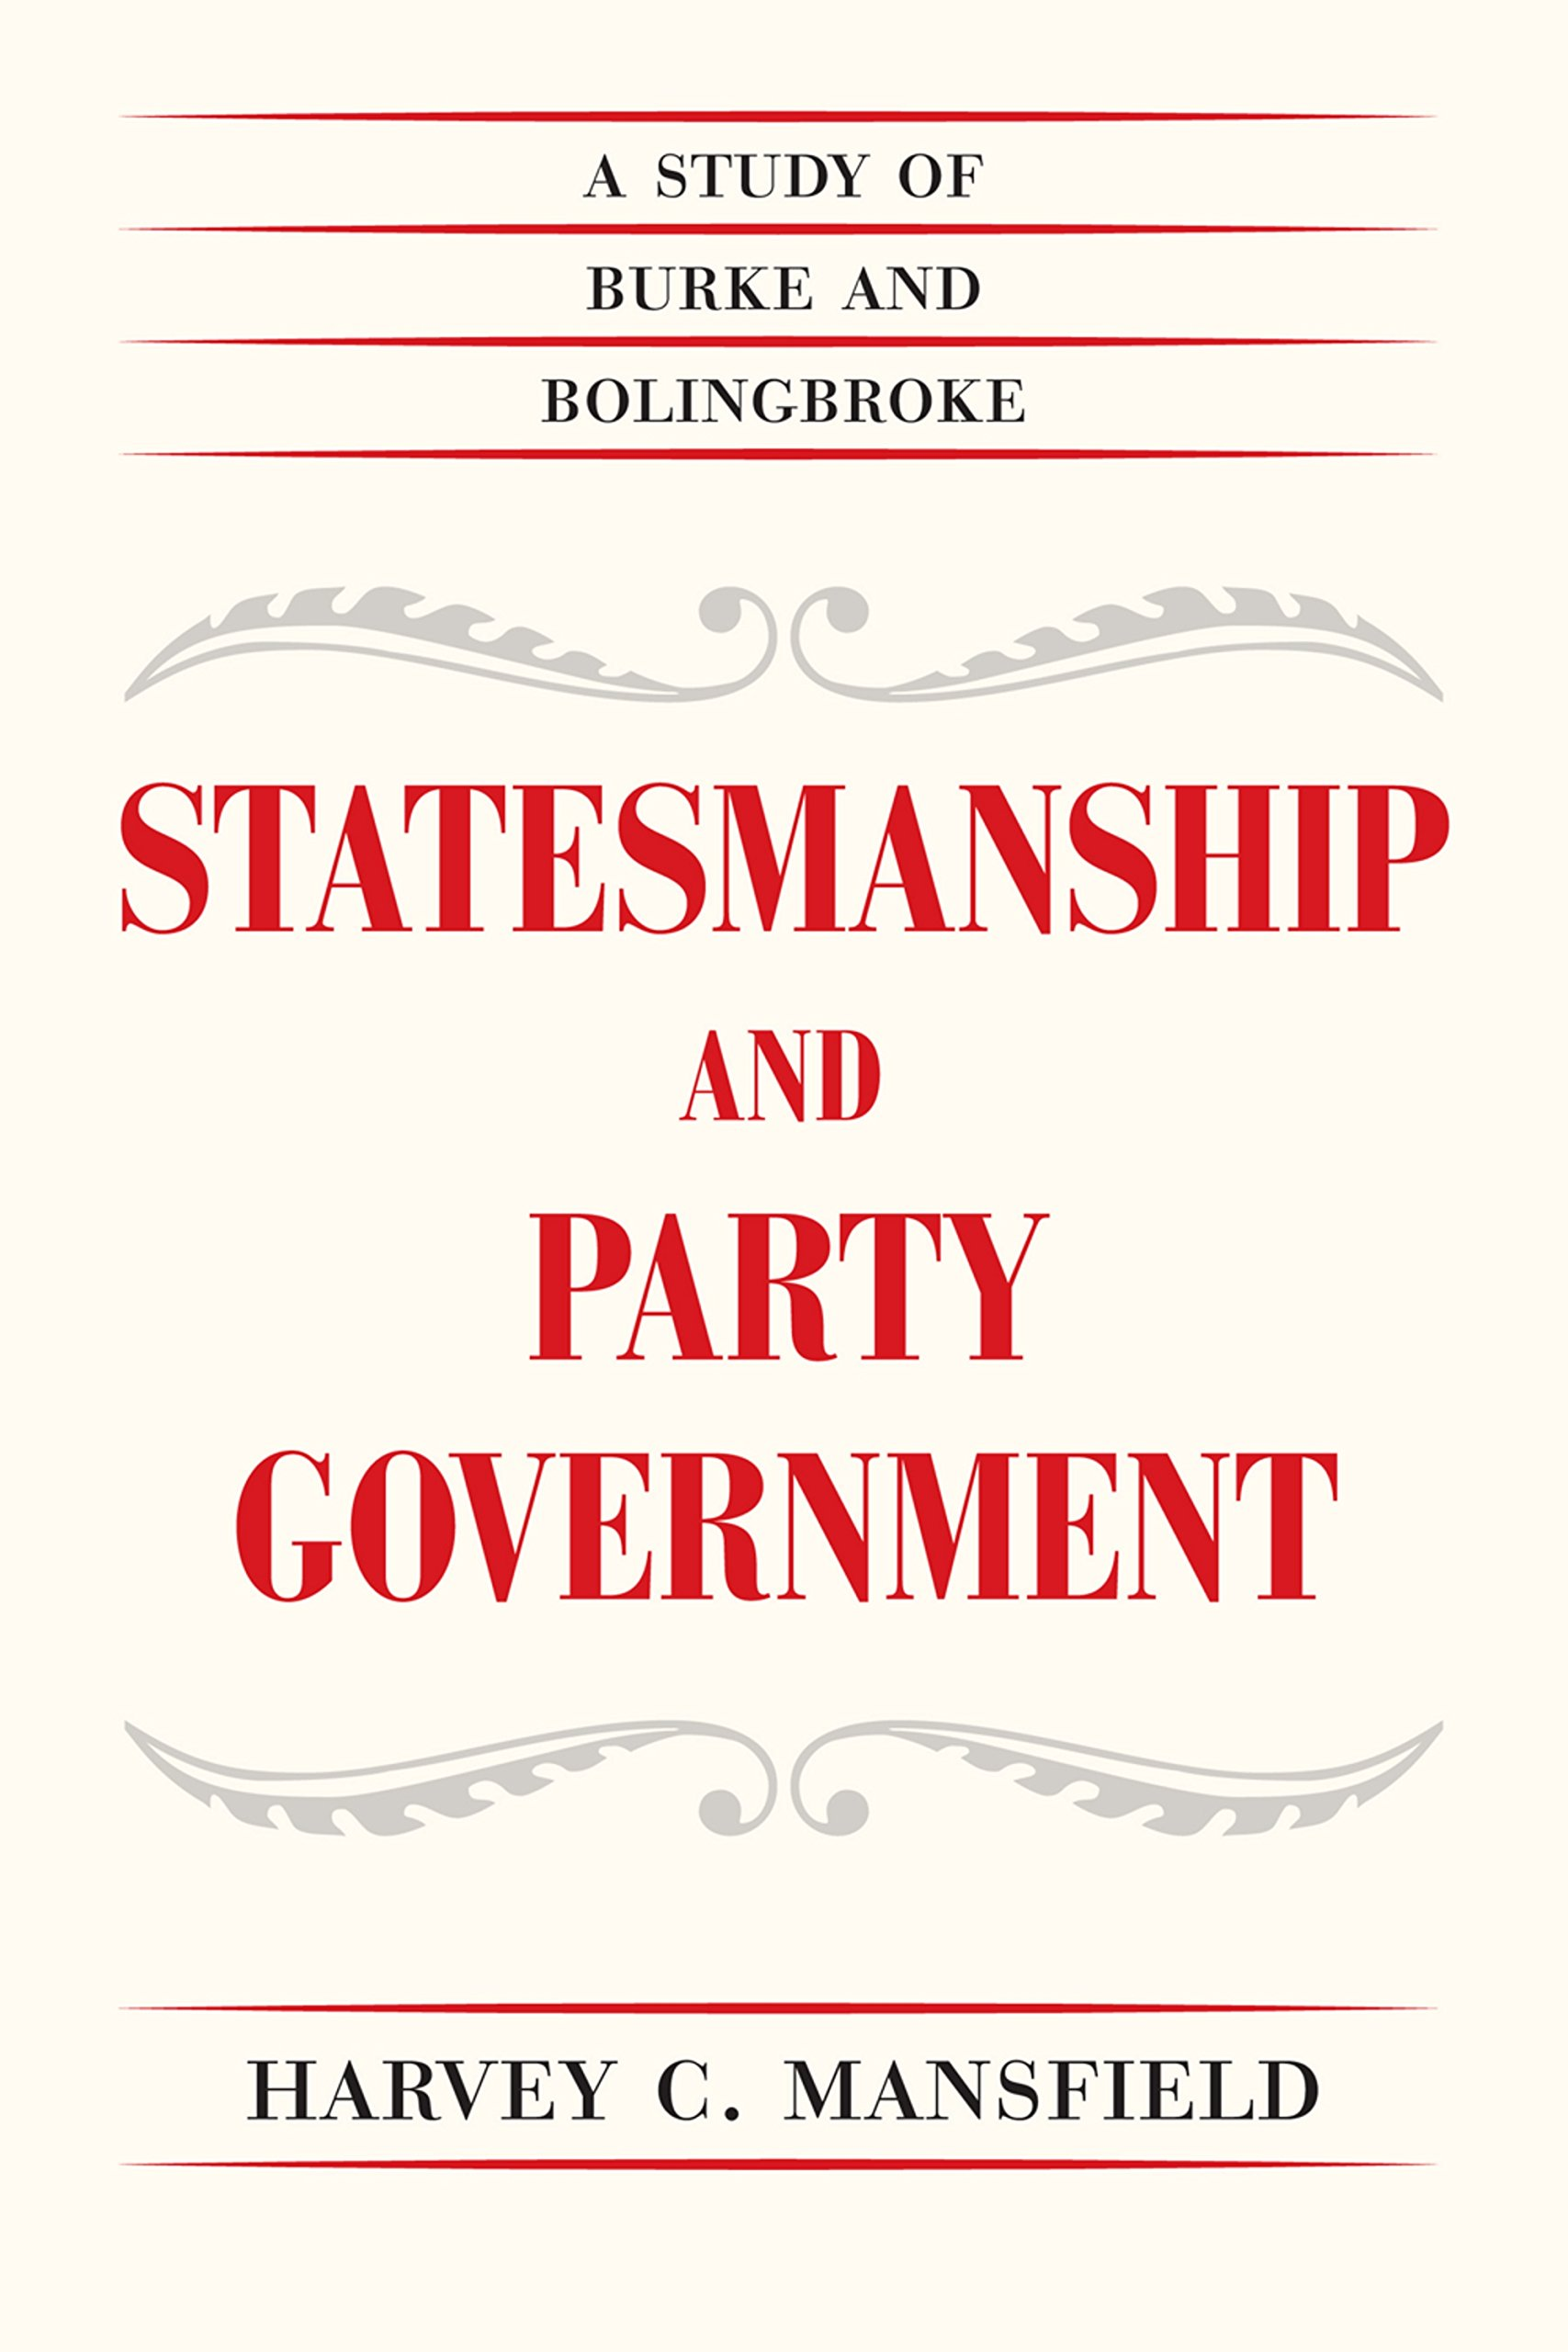 Image OfStatesmanship And Party Government: A Study Of Burke And Bolingbroke (English Edition)